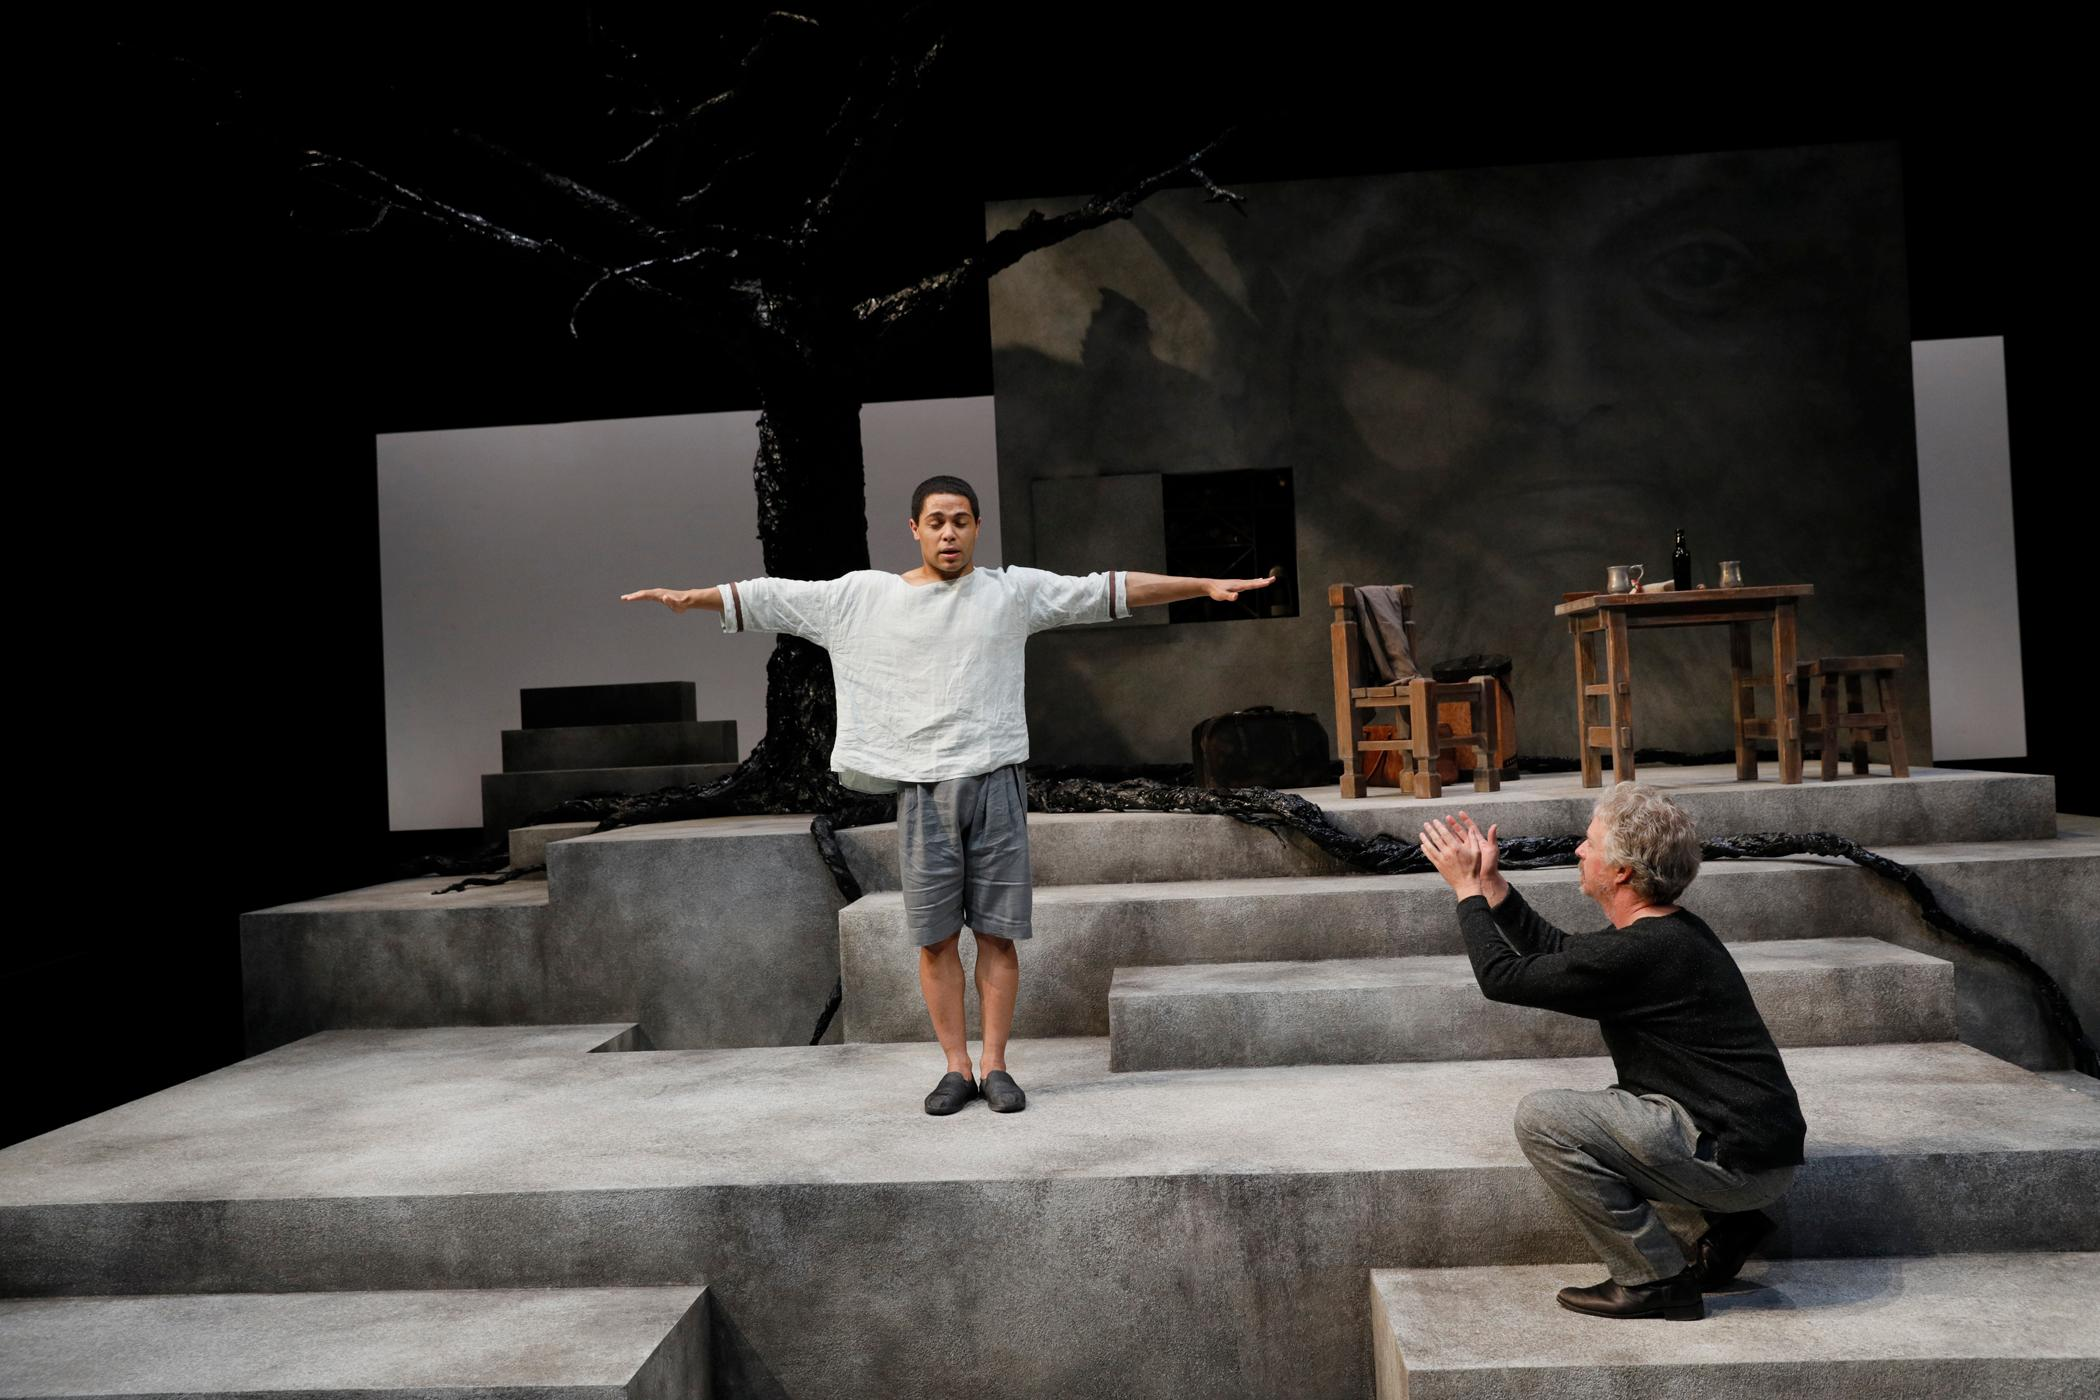 Alex & Aris runs through August 6 at ACT Theatre in downtown Seattle. (Image: ACT Theater)